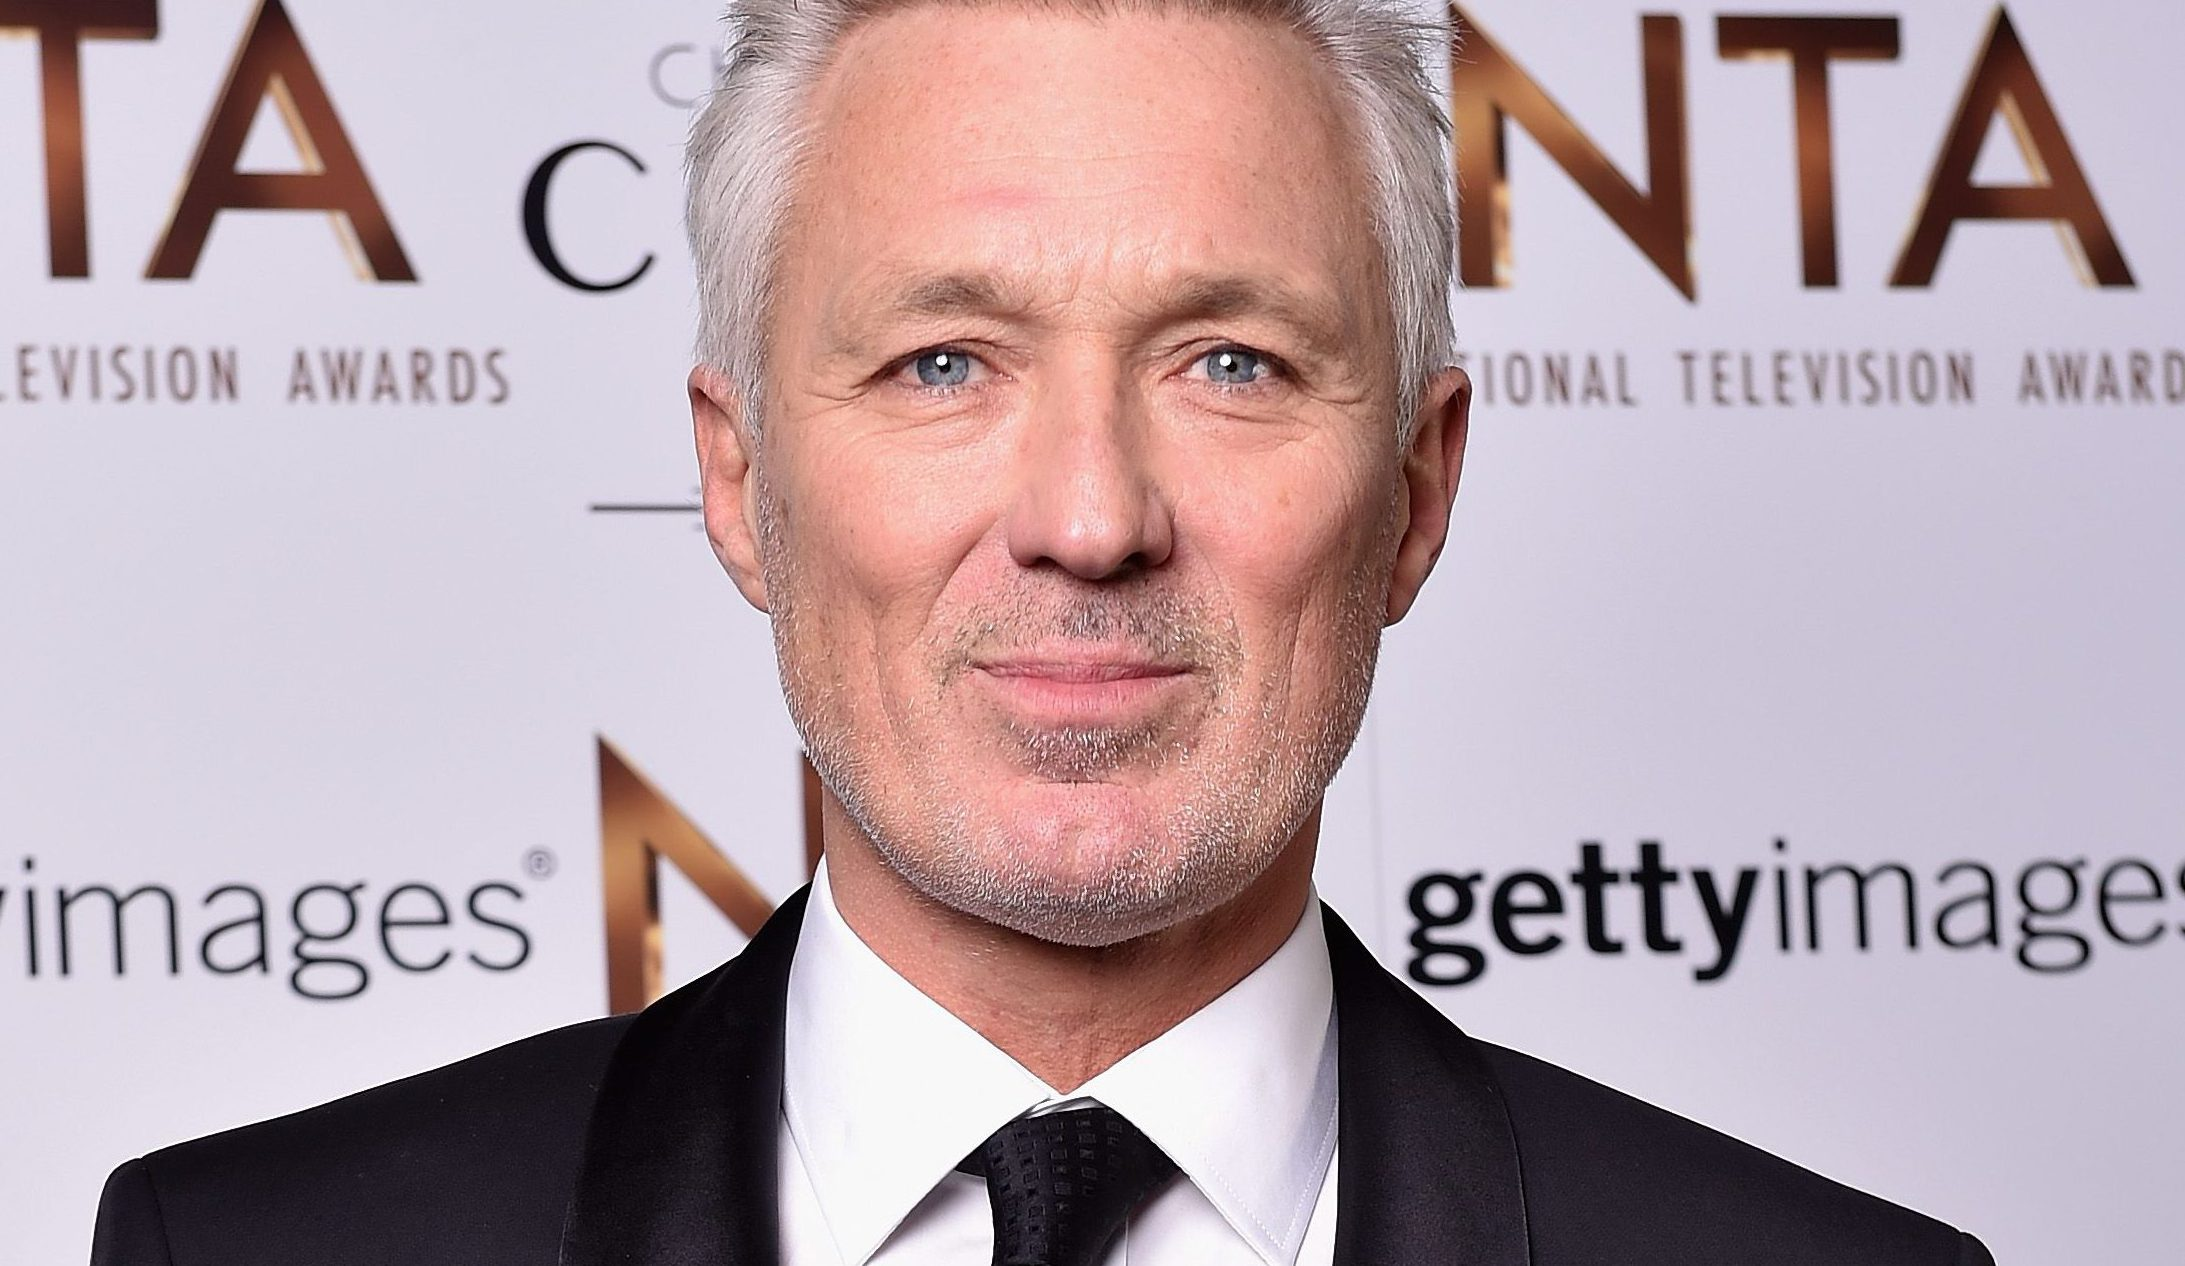 Martin Kemp says eight-hour drug bender was 'one of the best nights' of his life